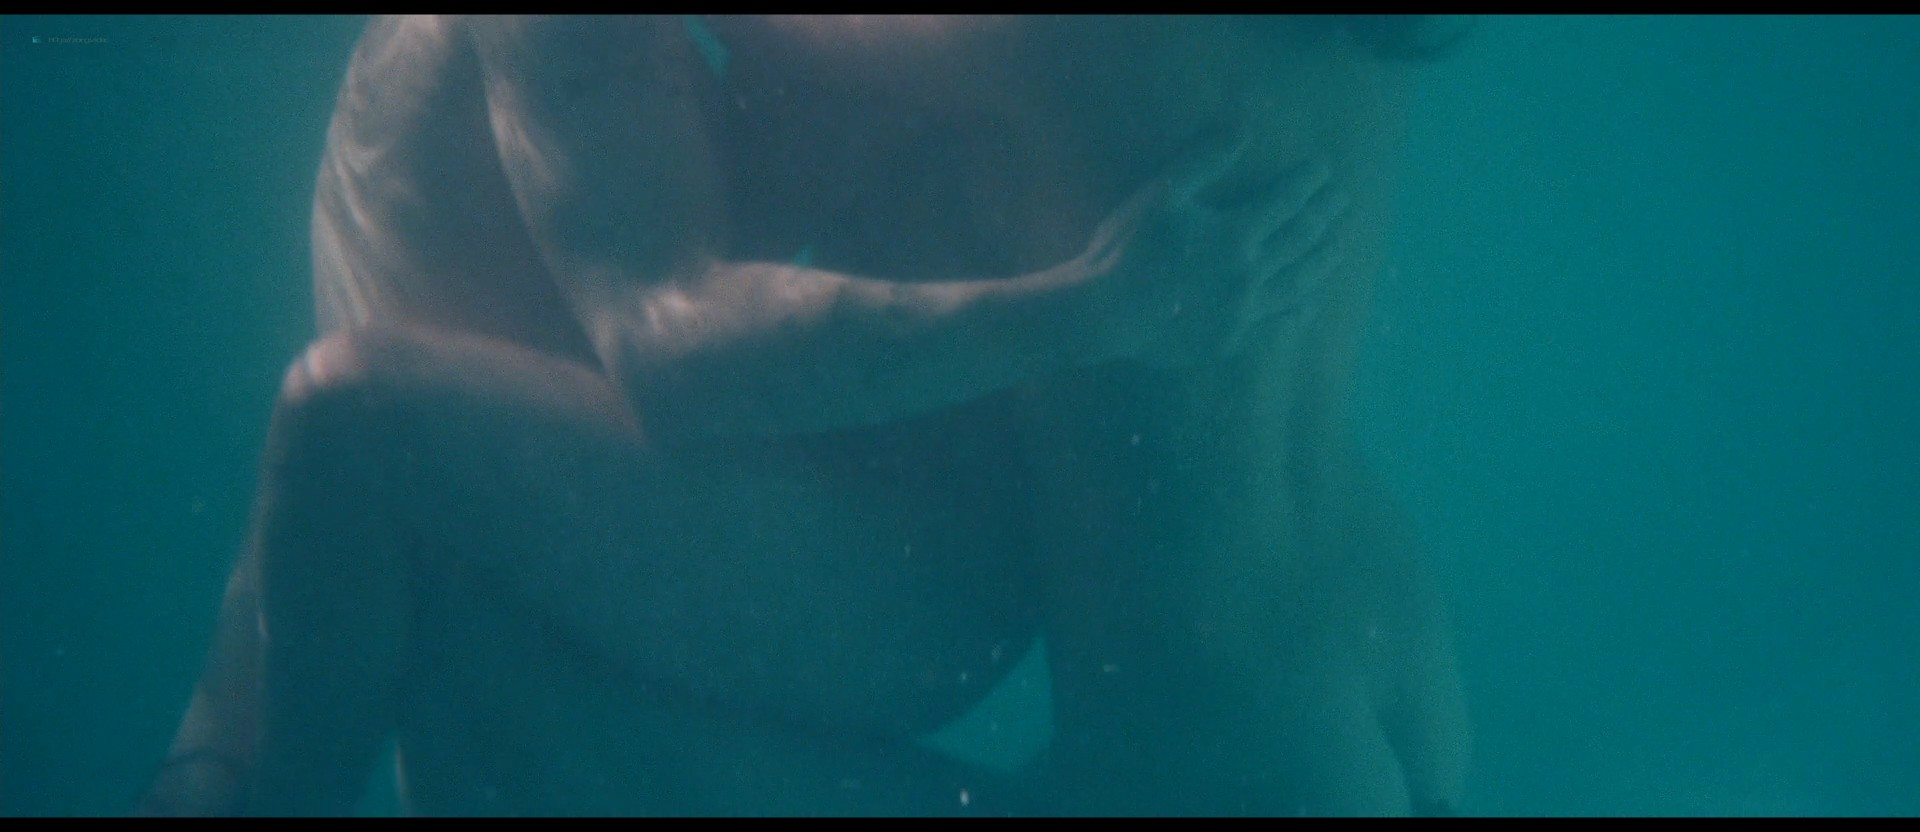 Ashley Benson nude skinny dipping others nude too - Spring Breakers (2012) HD 1080p BluRay (7)